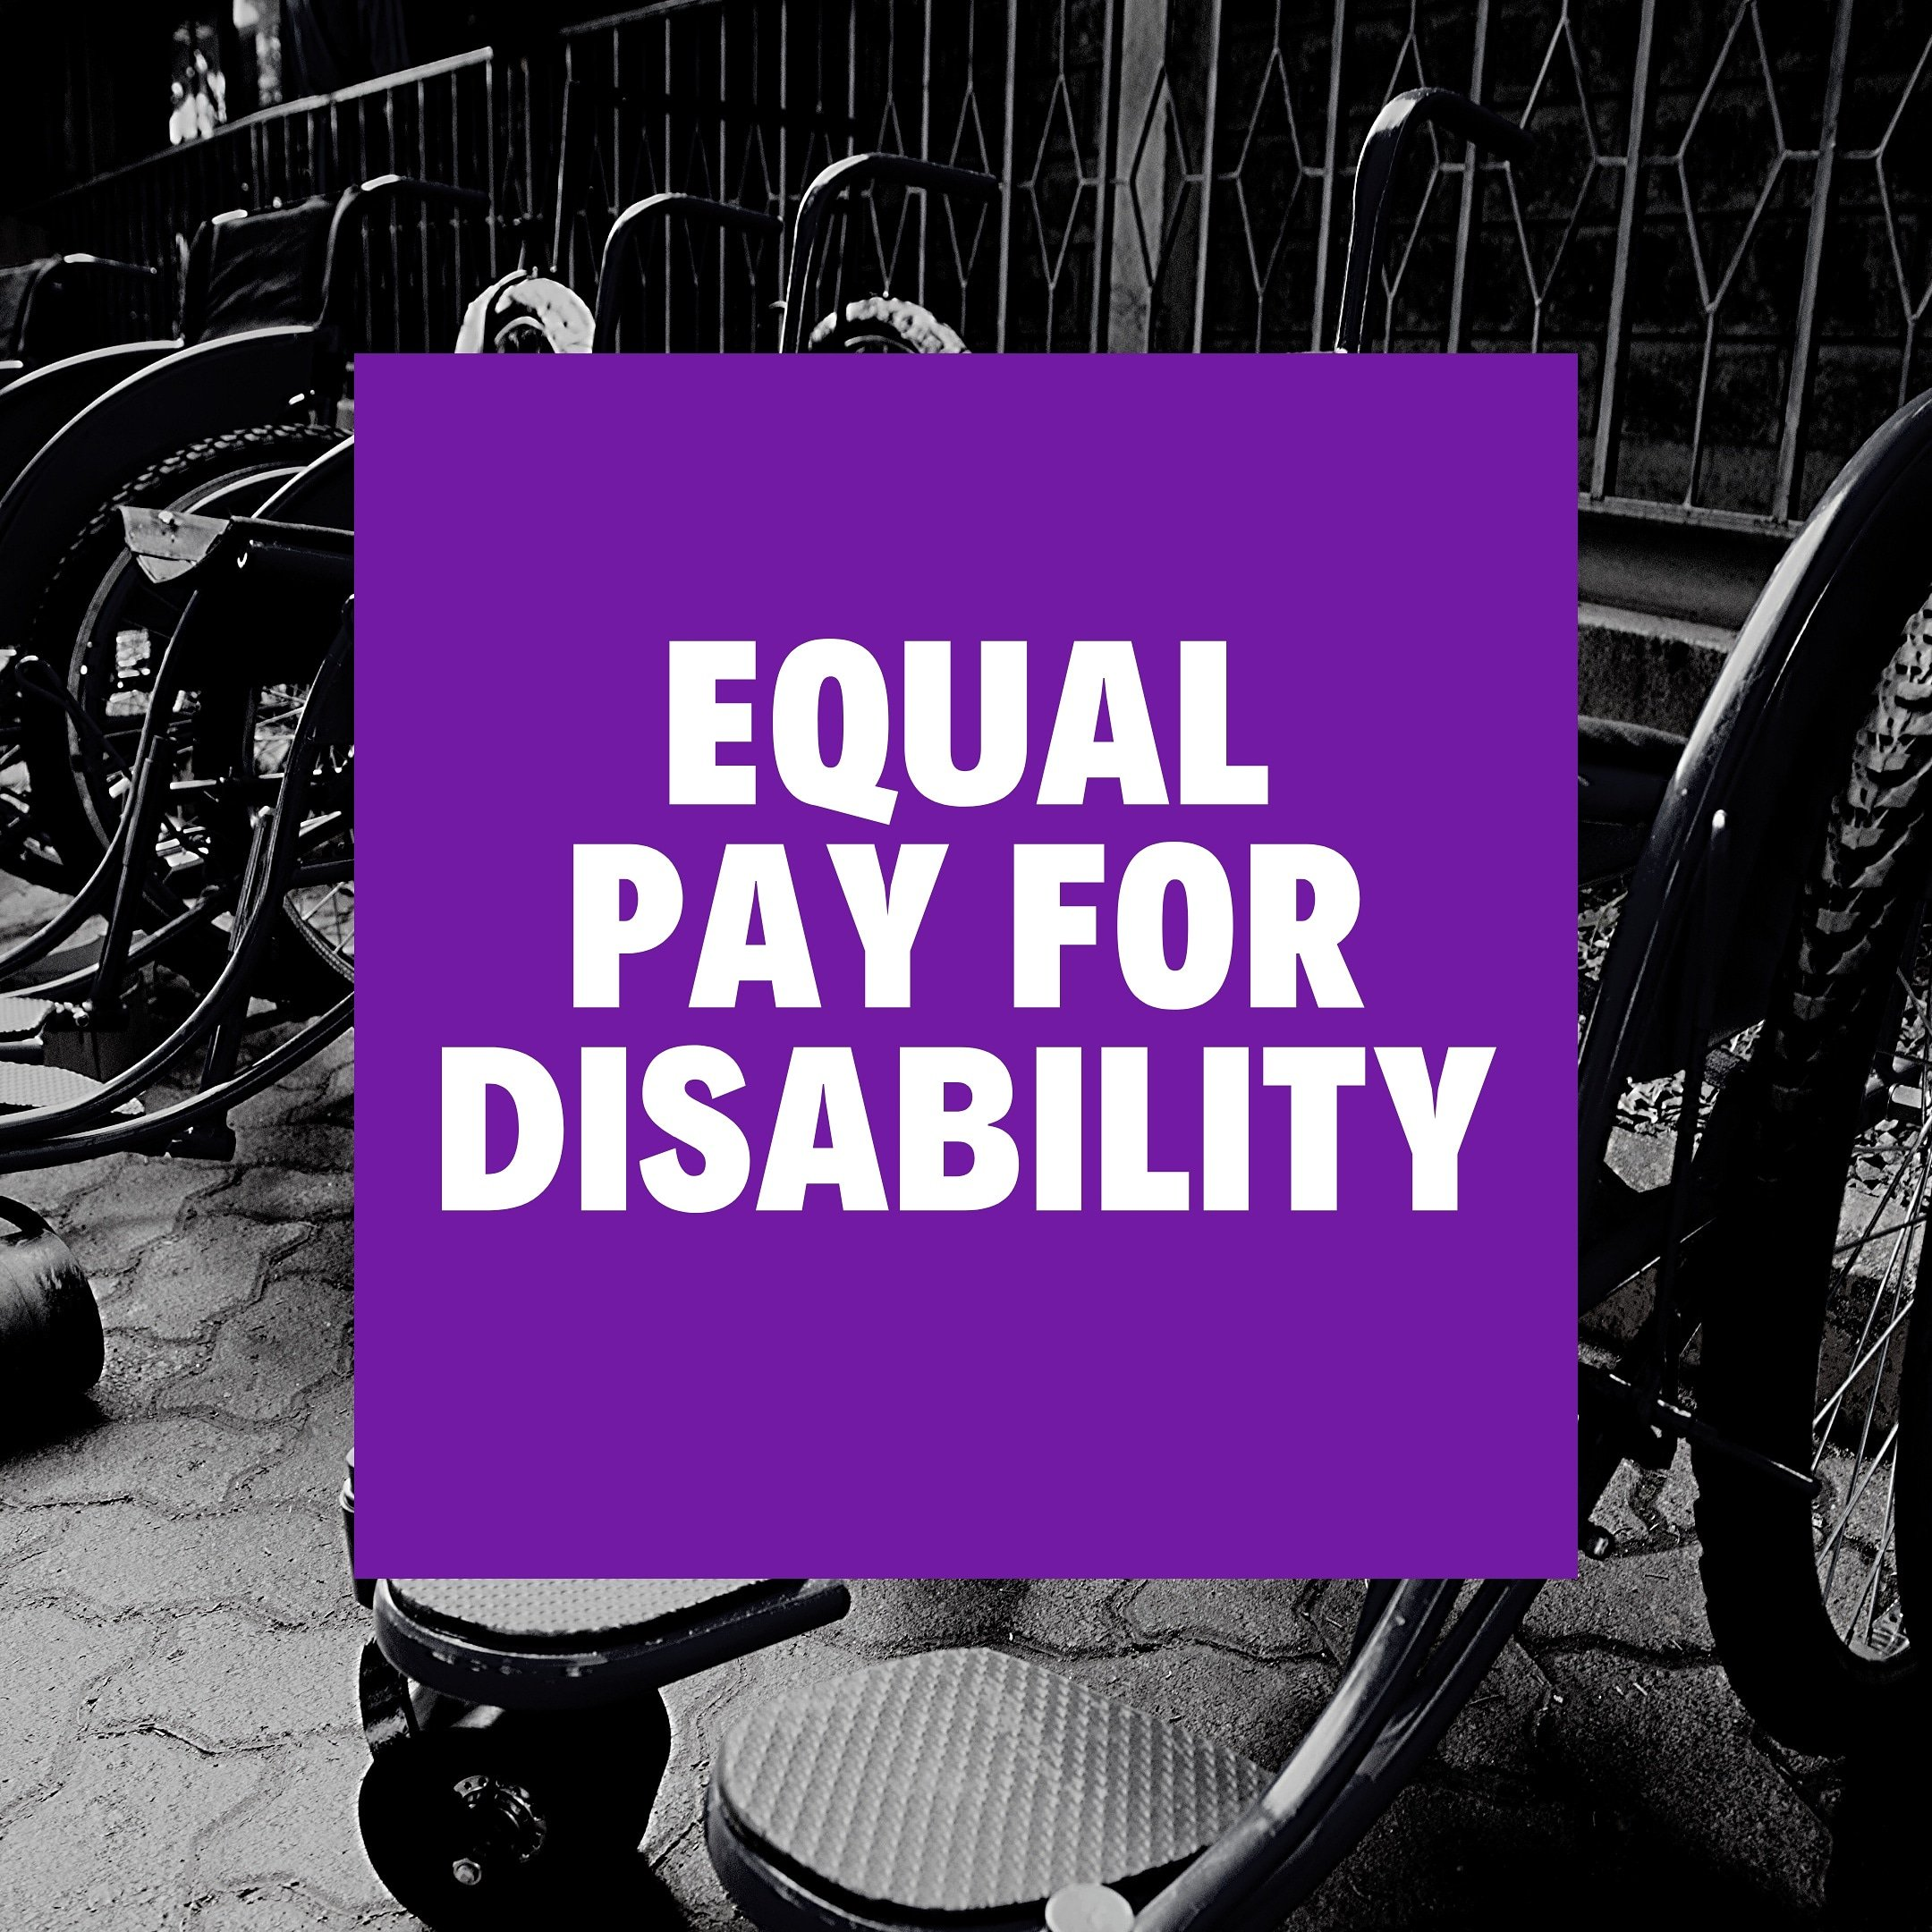 Equal Pay for Disability in bold, white text on a purple square. A black and white photograph of manual wheelchairs is in the background.